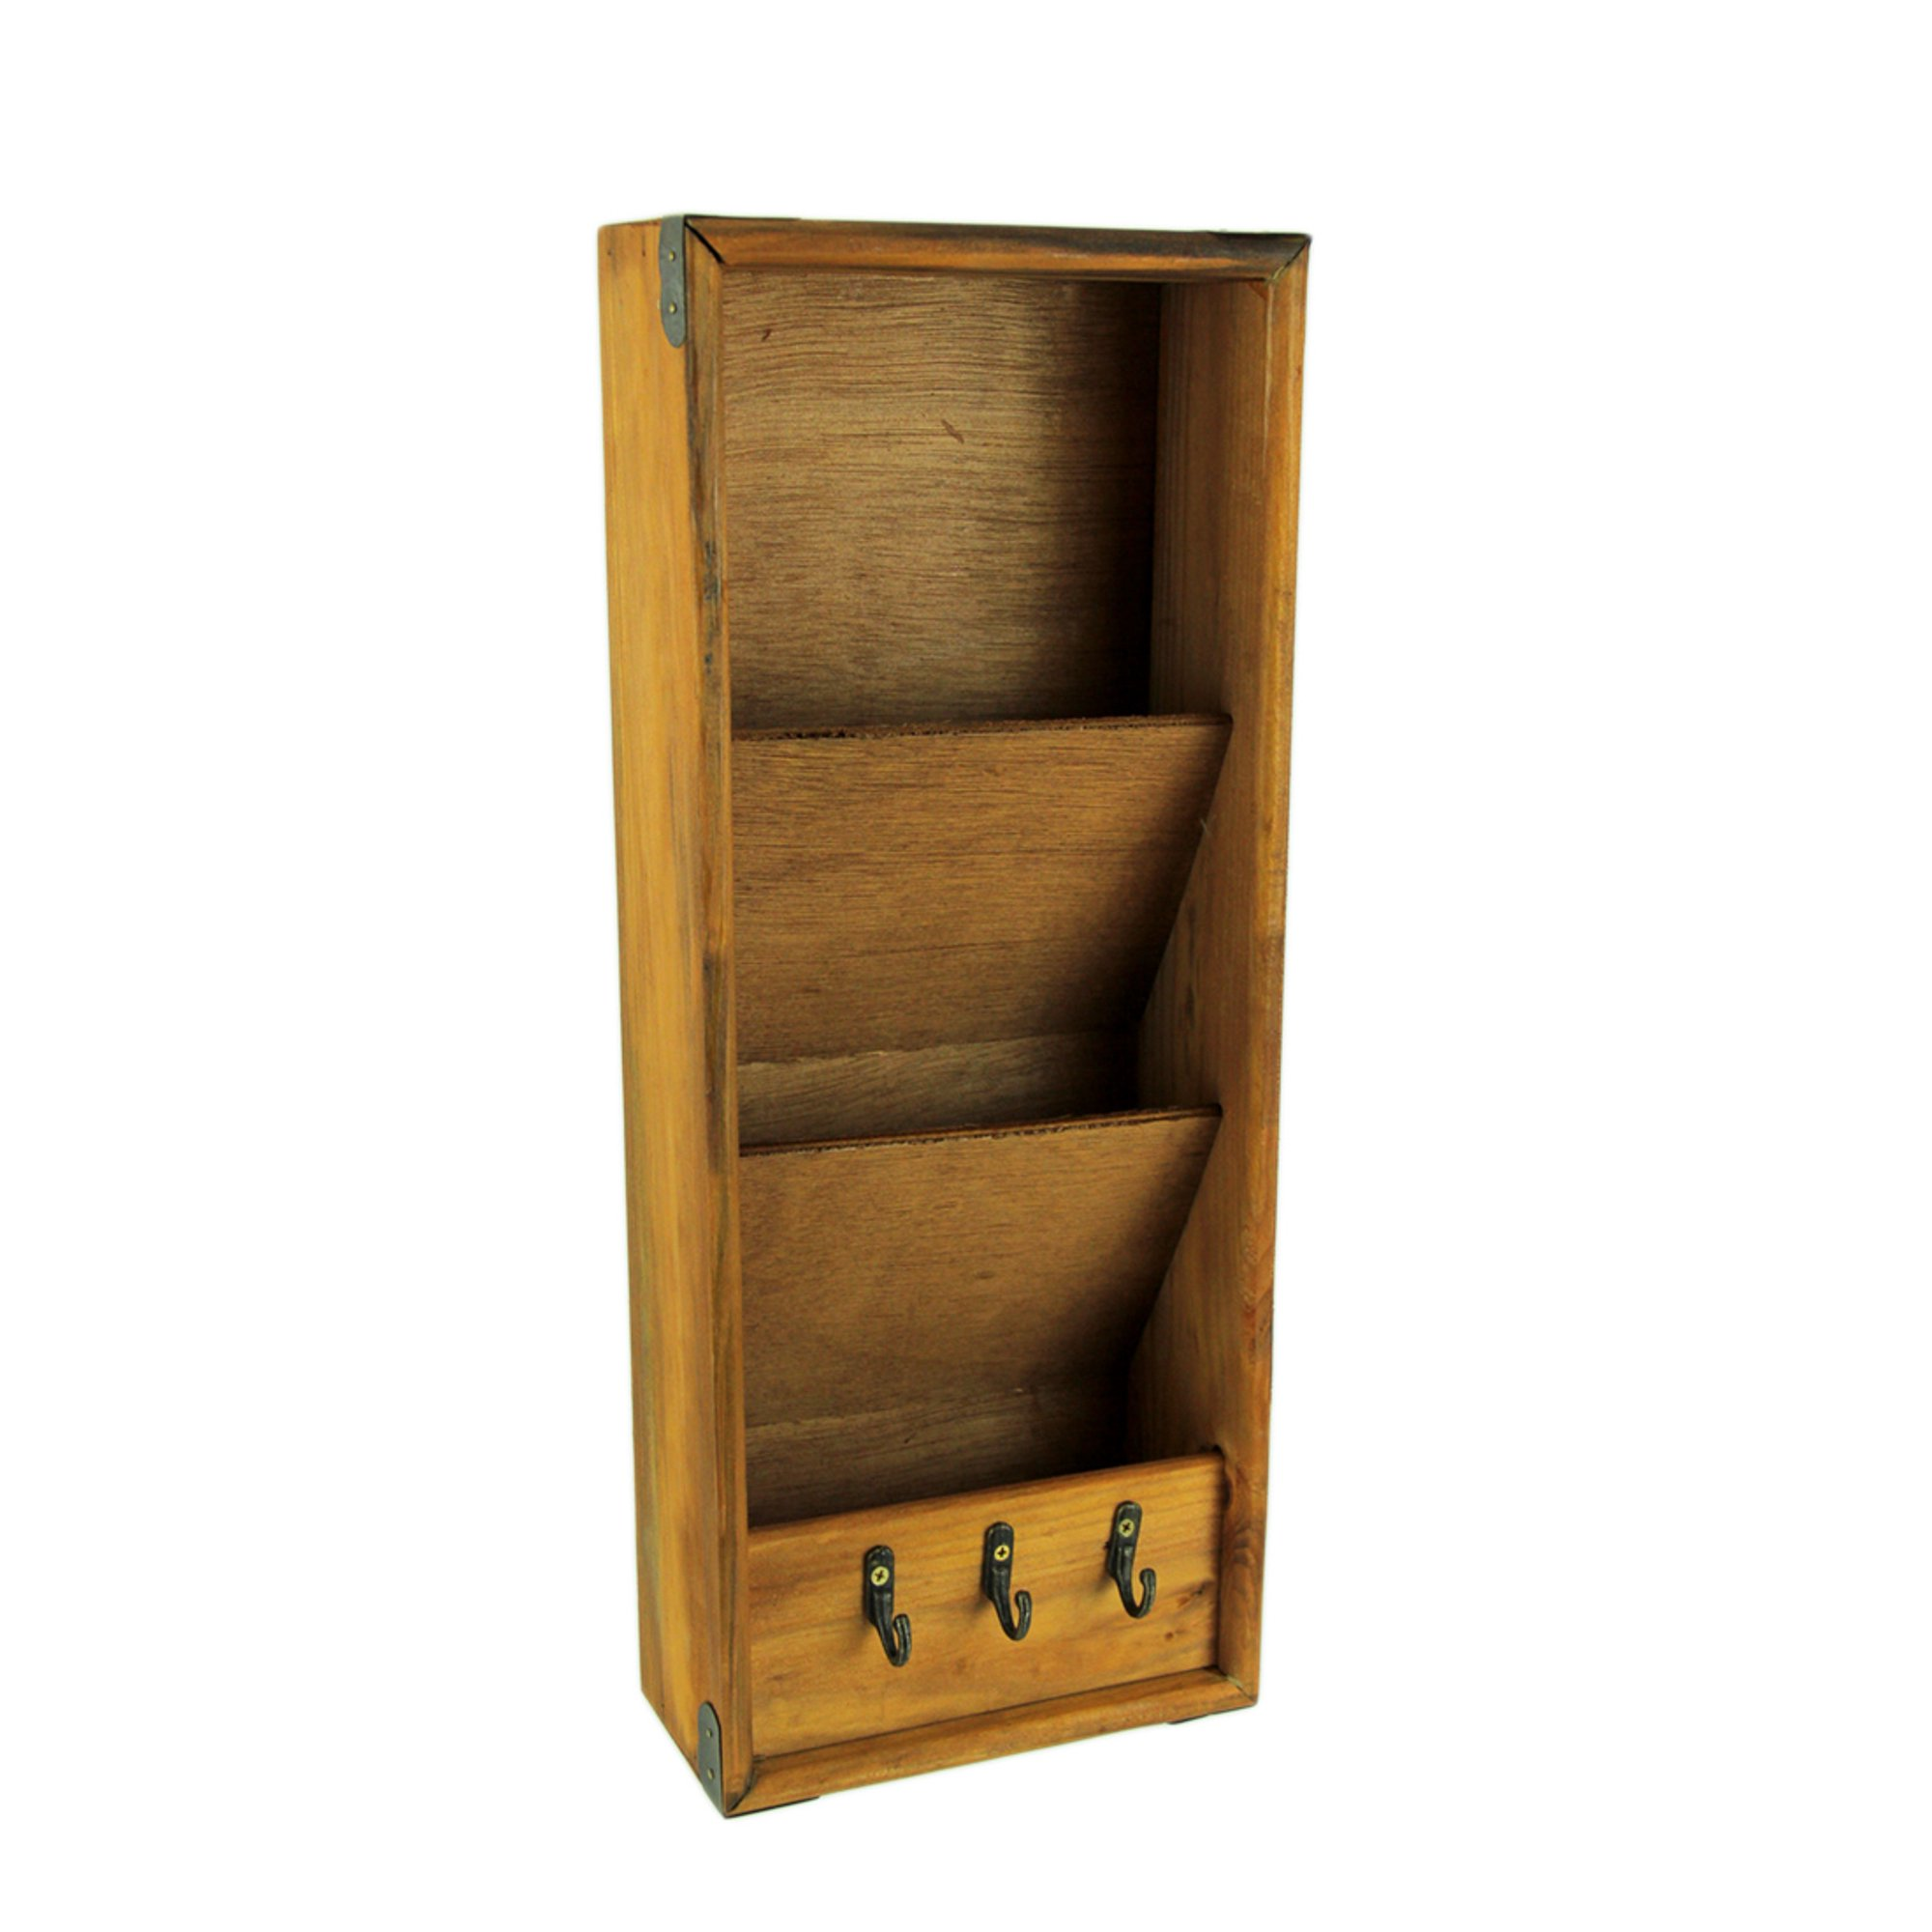 6bd804581e1e Rustic Wood 3 Pocket Hanging Mail Organizer with Key Rack